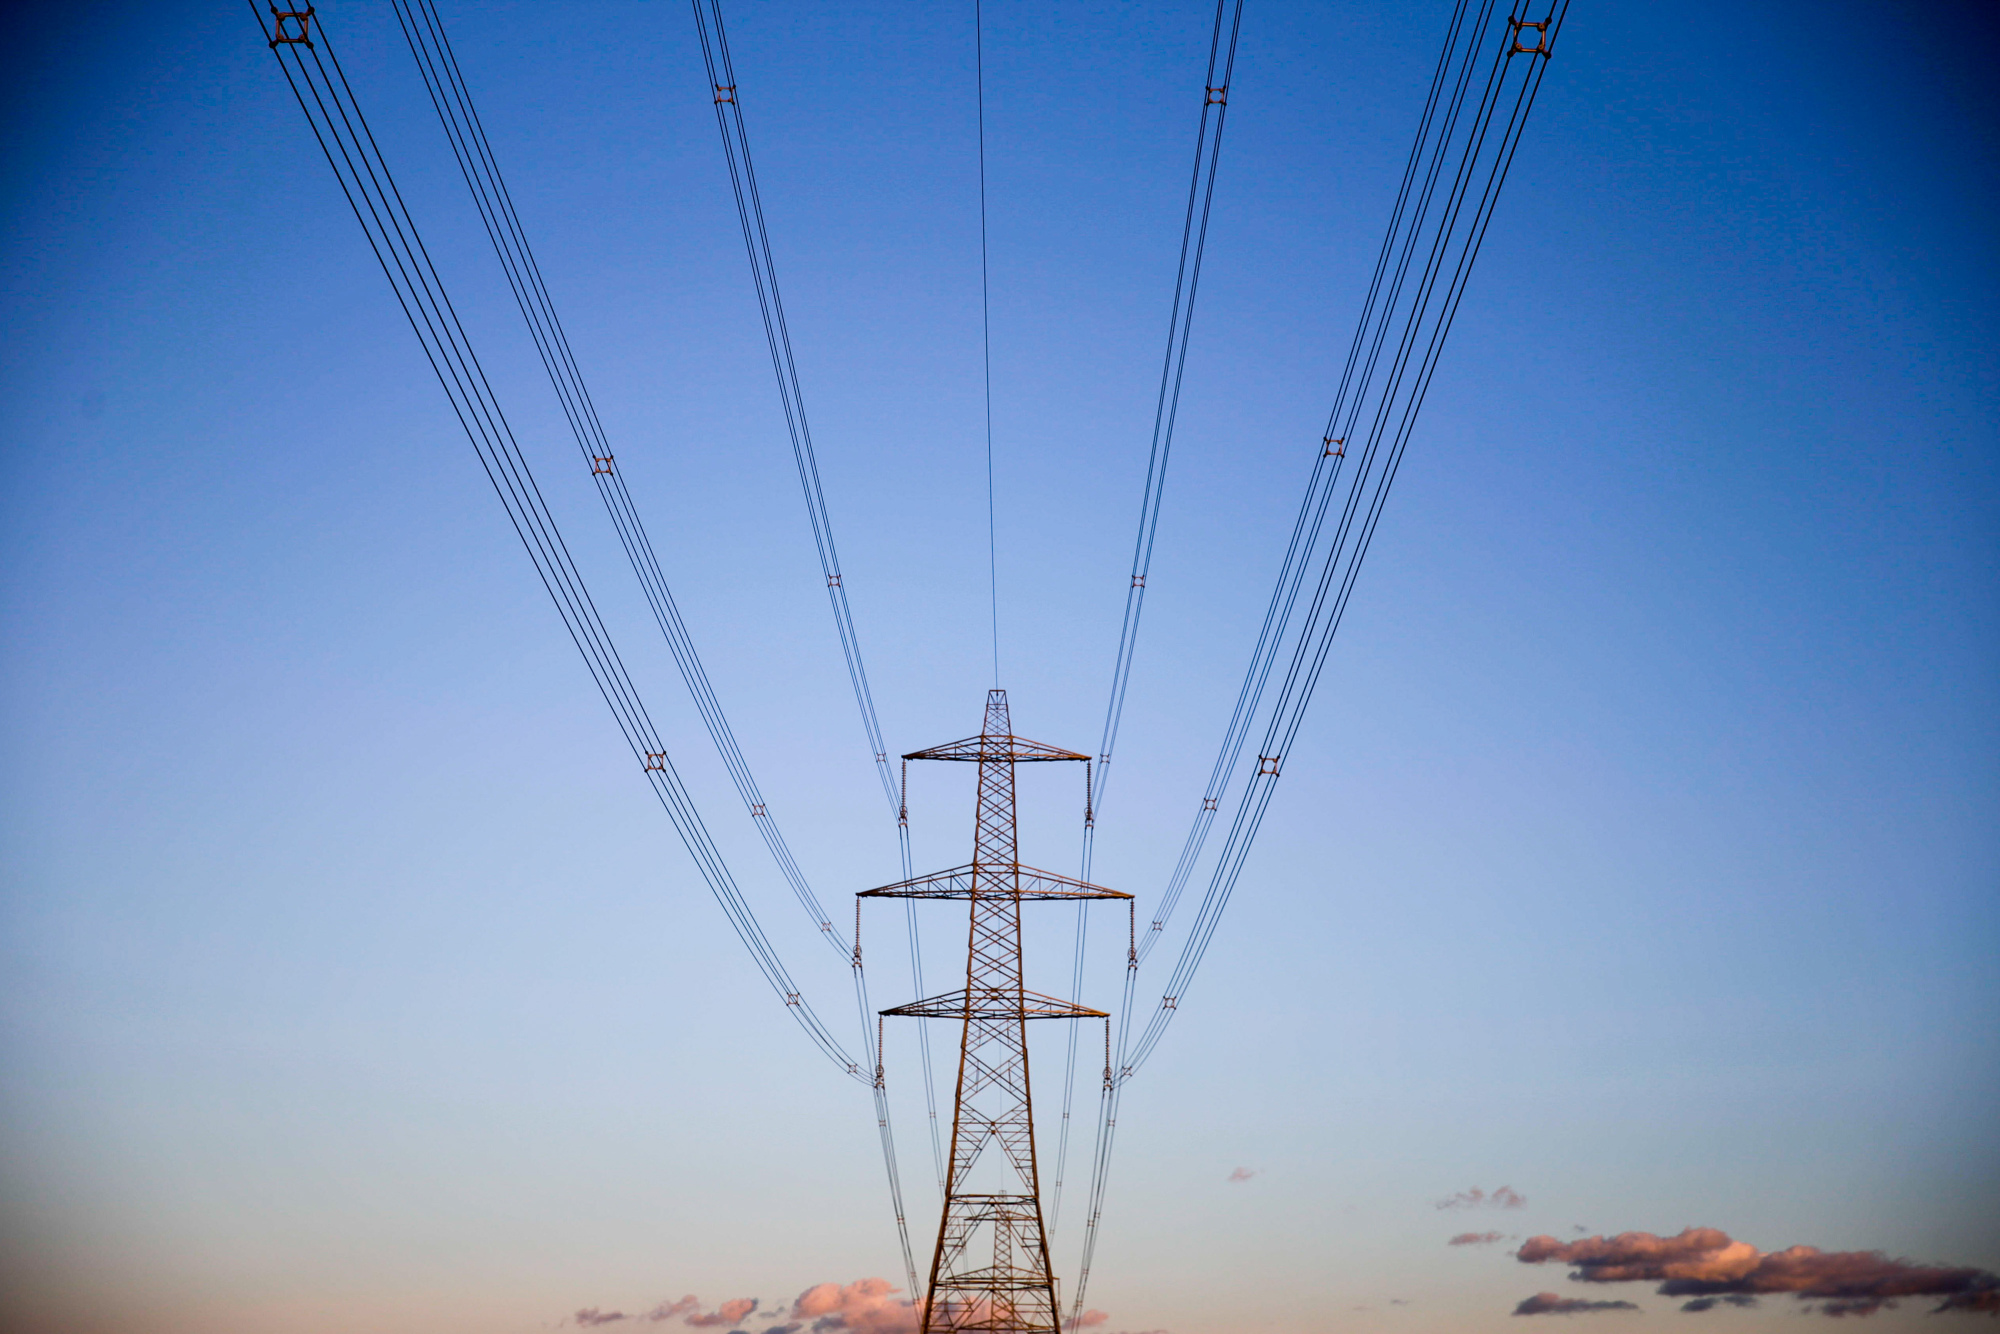 More investment in renewables is needed to make up for the closure of coal and nuclear power stations over the next decade to provide electricity.